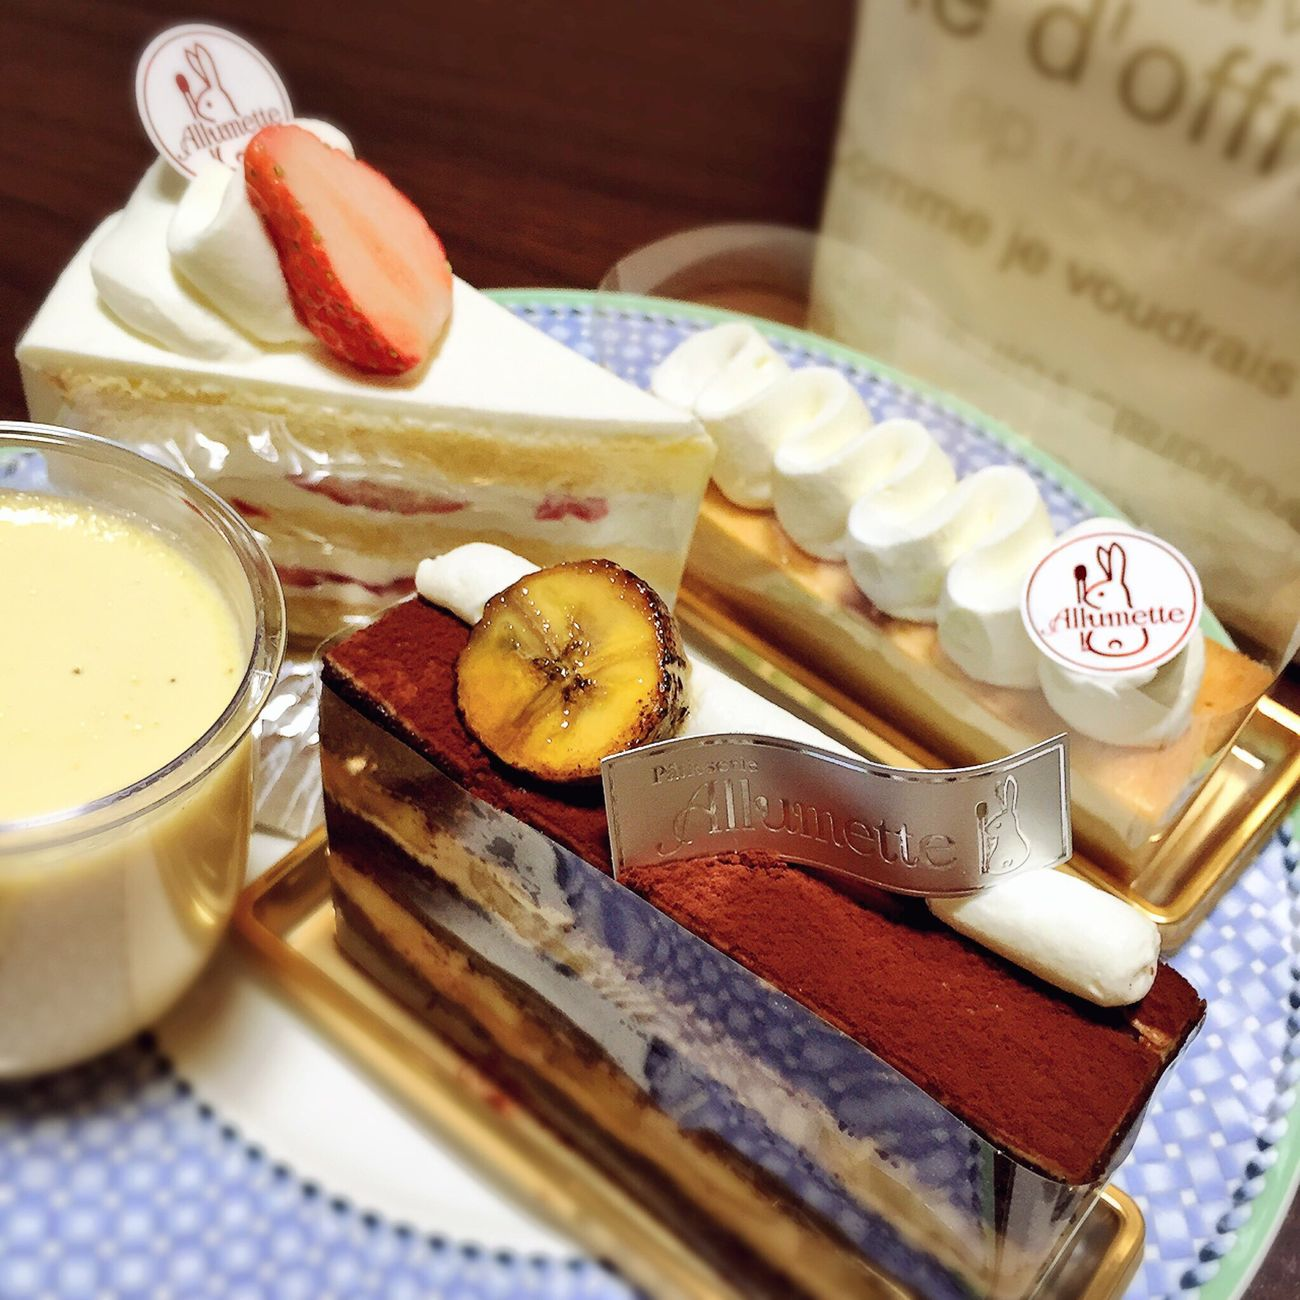 Cake Cakes Cake♥ Cake Time Strawberry Banana Chocolatecake ショートケーキ プリン チーズケーキ